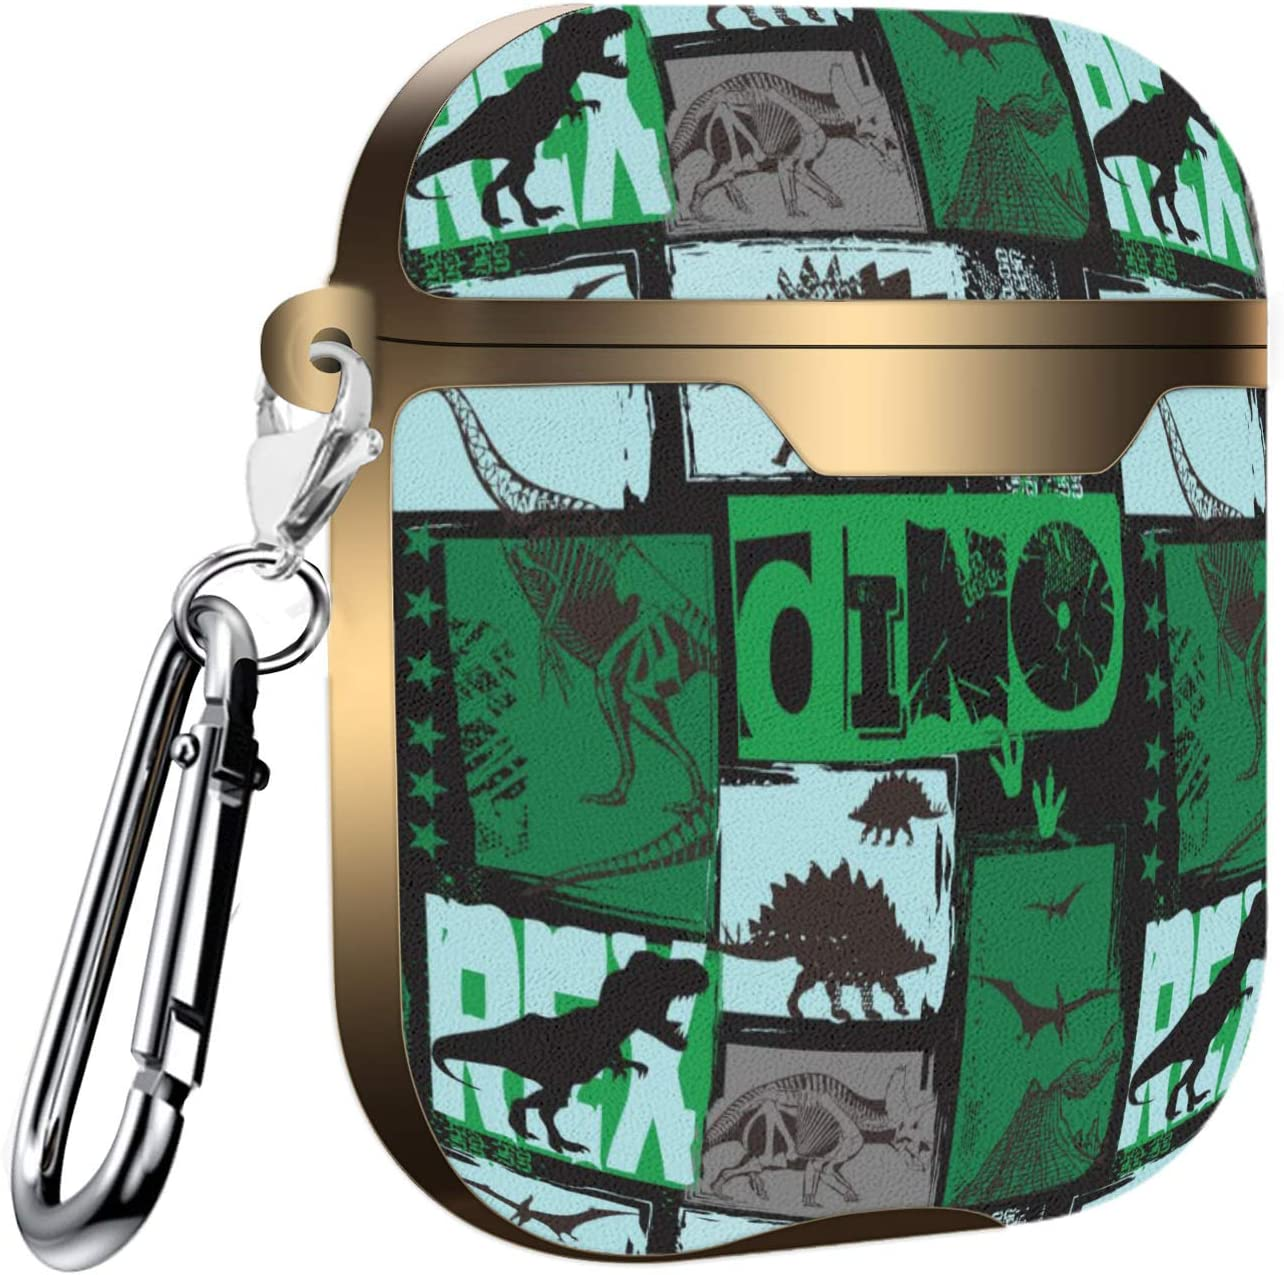 Slim Form Fitted Printing Pattern Cover Case with Carabiner Compatible with Airpods 1 and AirPods 2 Funky Design with t-rex,Dinosaur